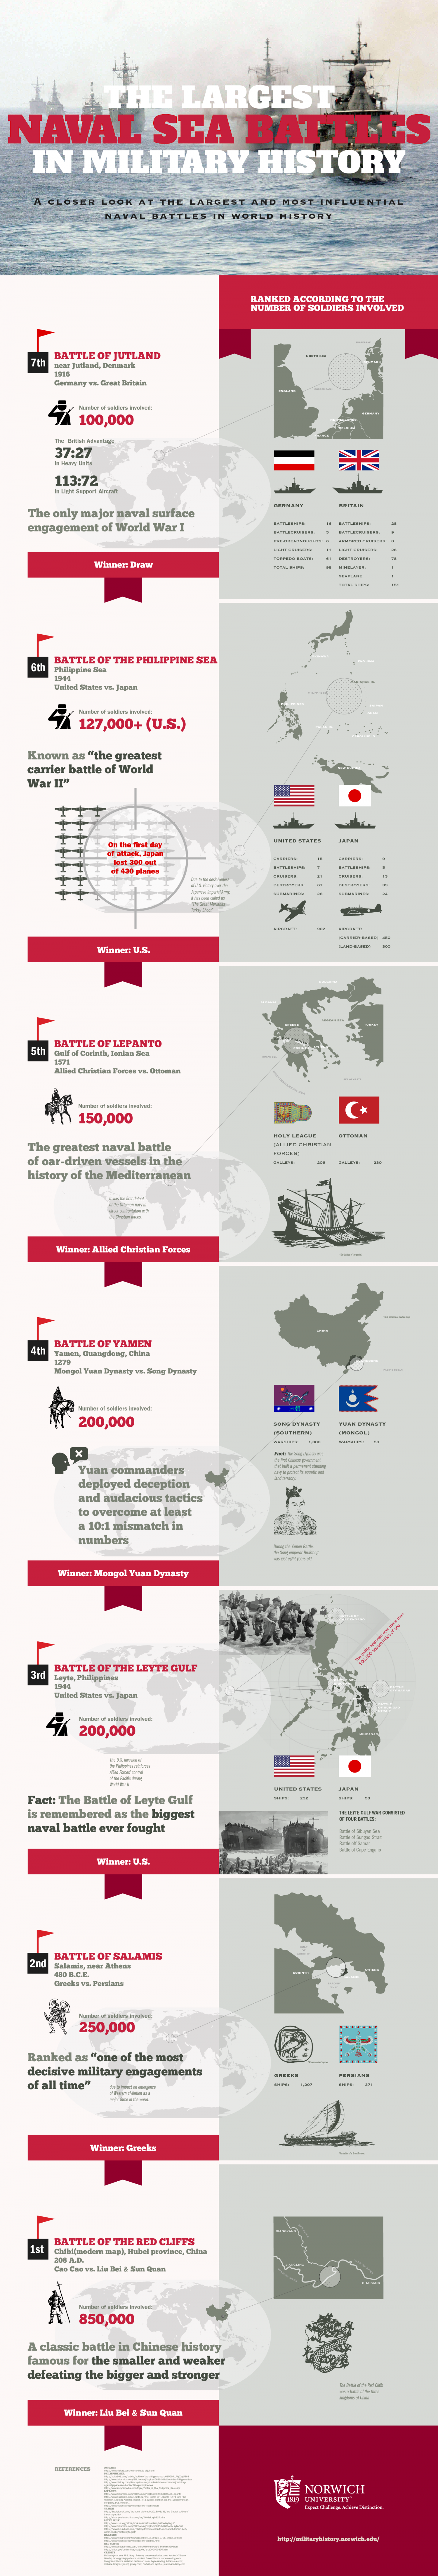 The Largest Naval Sea Battles in Military History Infographic